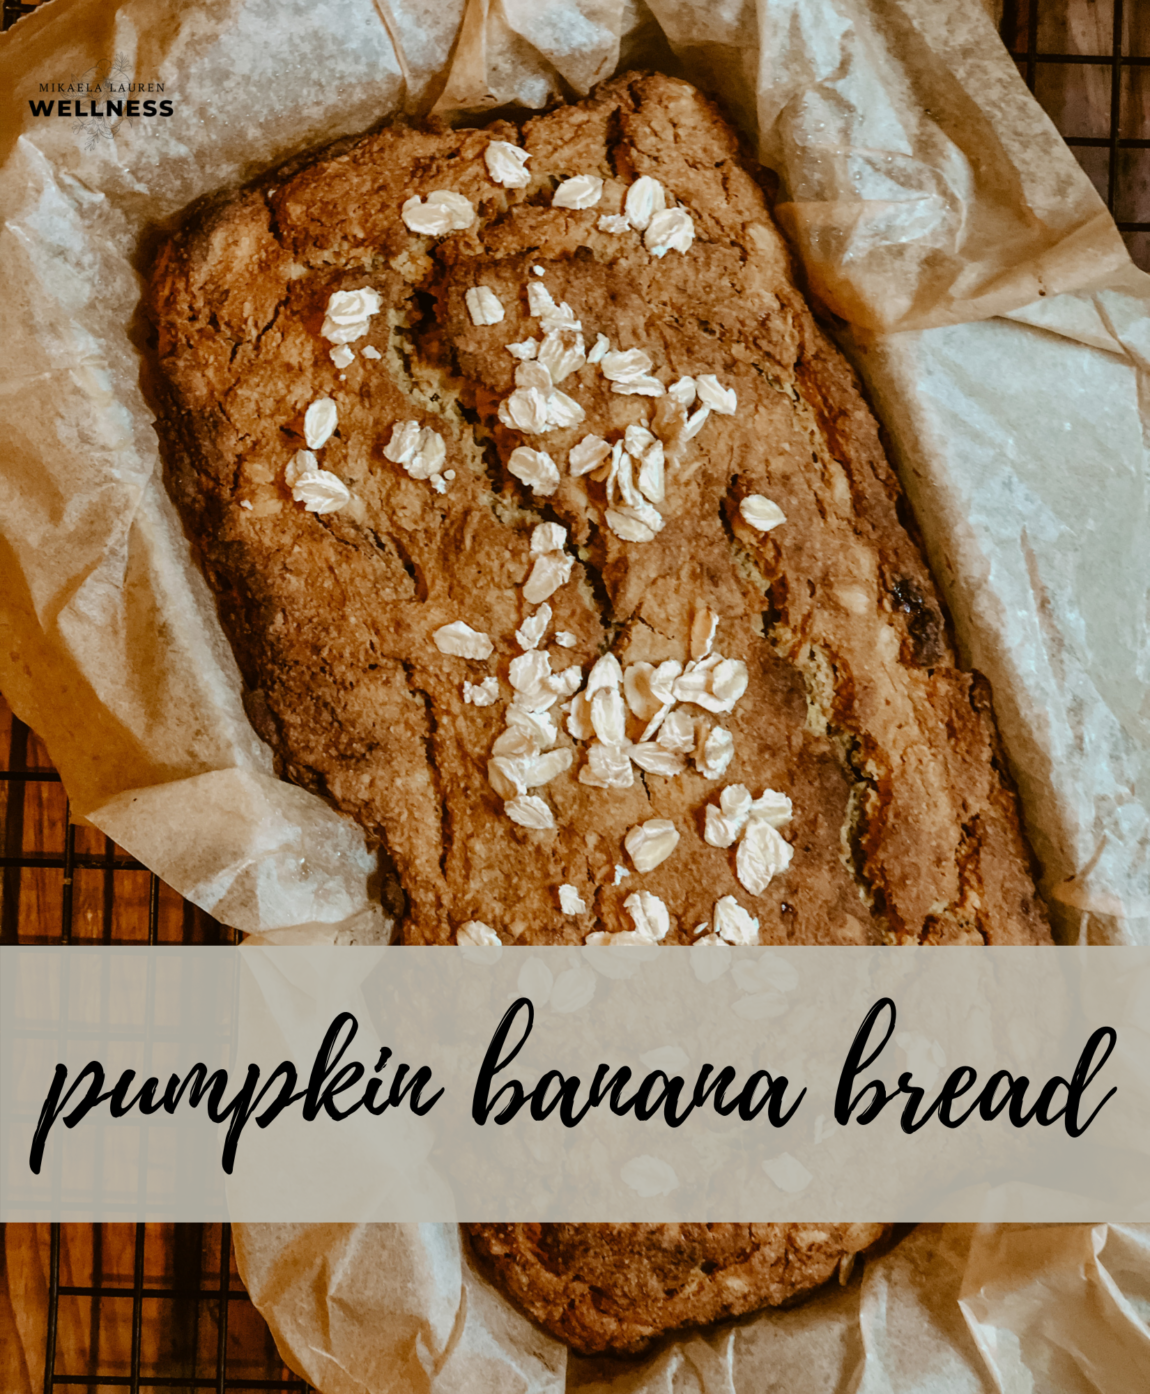 Mikaela Lauren Wellness Pumpkin Banana Bread Recipe